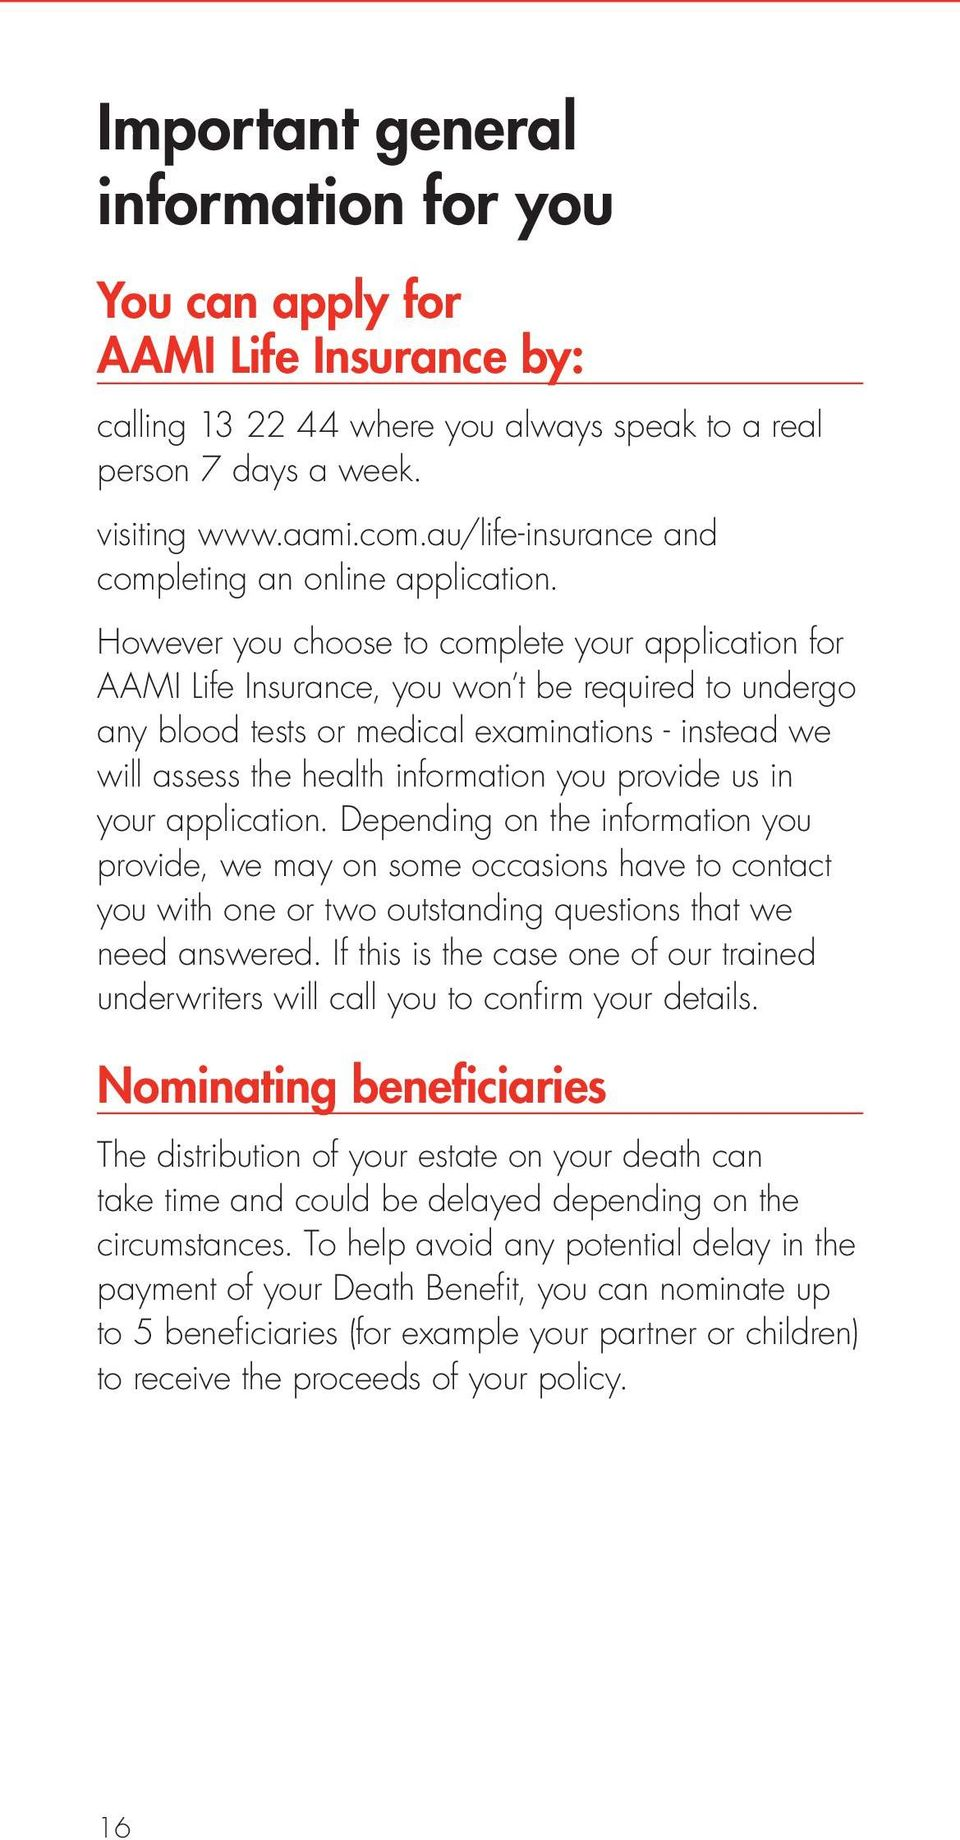 However you choose to complete your application for AAMI Life Insurance, you won t be required to undergo any blood tests or medical examinations - instead we will assess the health information you